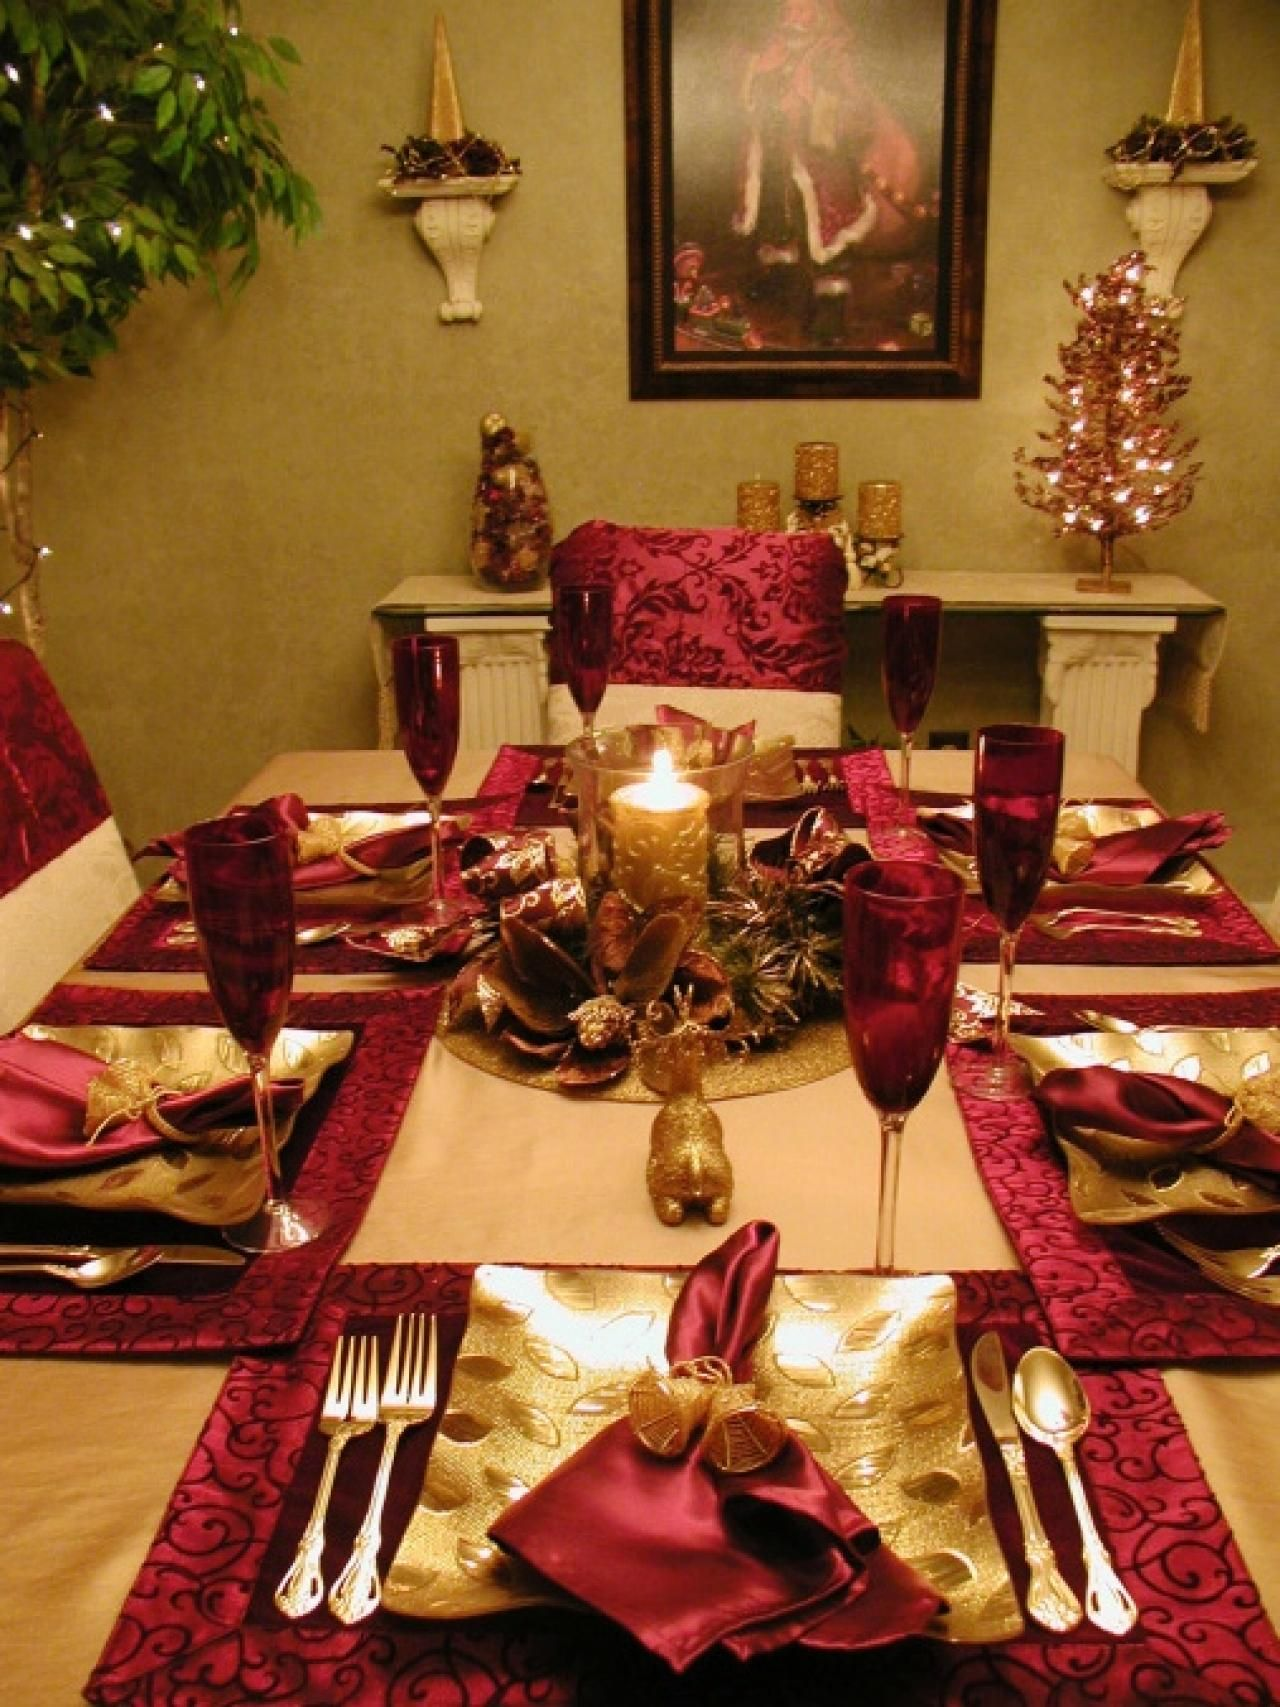 Holiday Table Decorations Ideas Part - 35: 25 Gorgeous Holiday Table Settings : Decorating : Home U0026 Garden Television.  Burgundy And Gold - My Favourite Combo